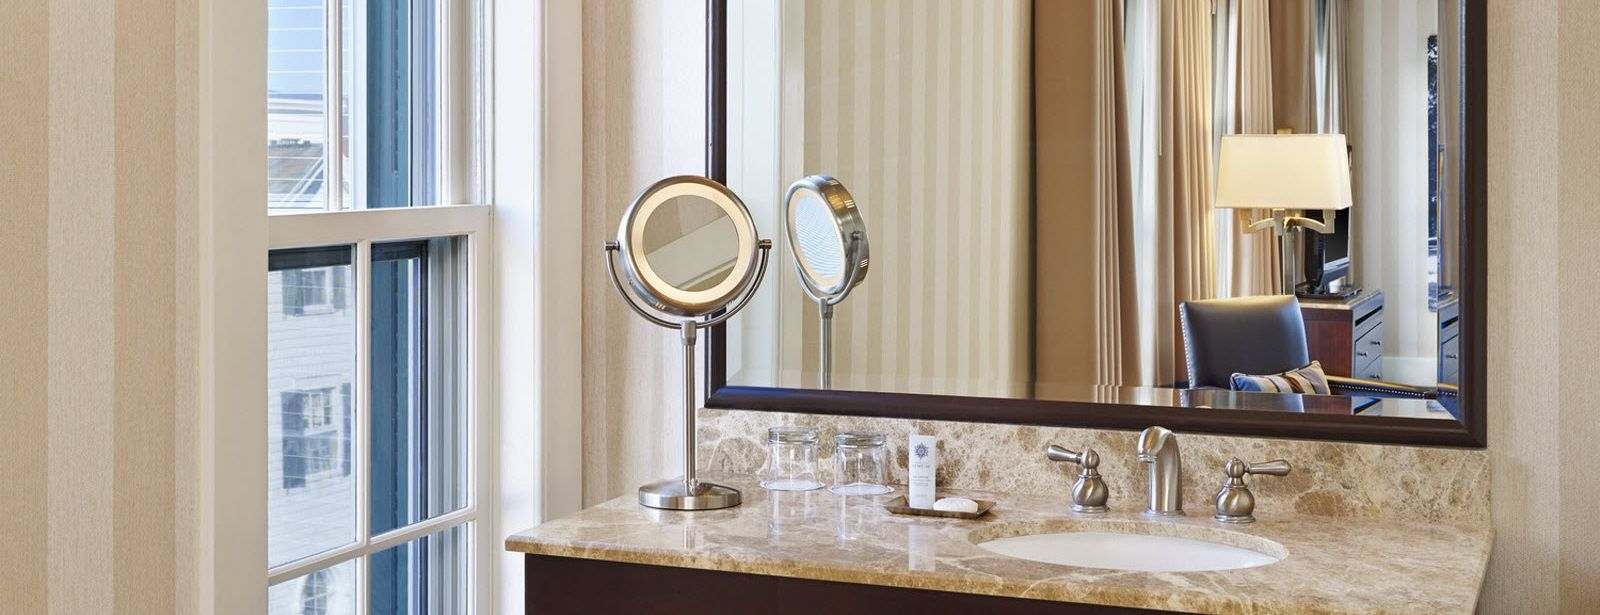 The Equinox, a Luxury Collection Golf Resort & Spa, Vermont superior guest room bathroom